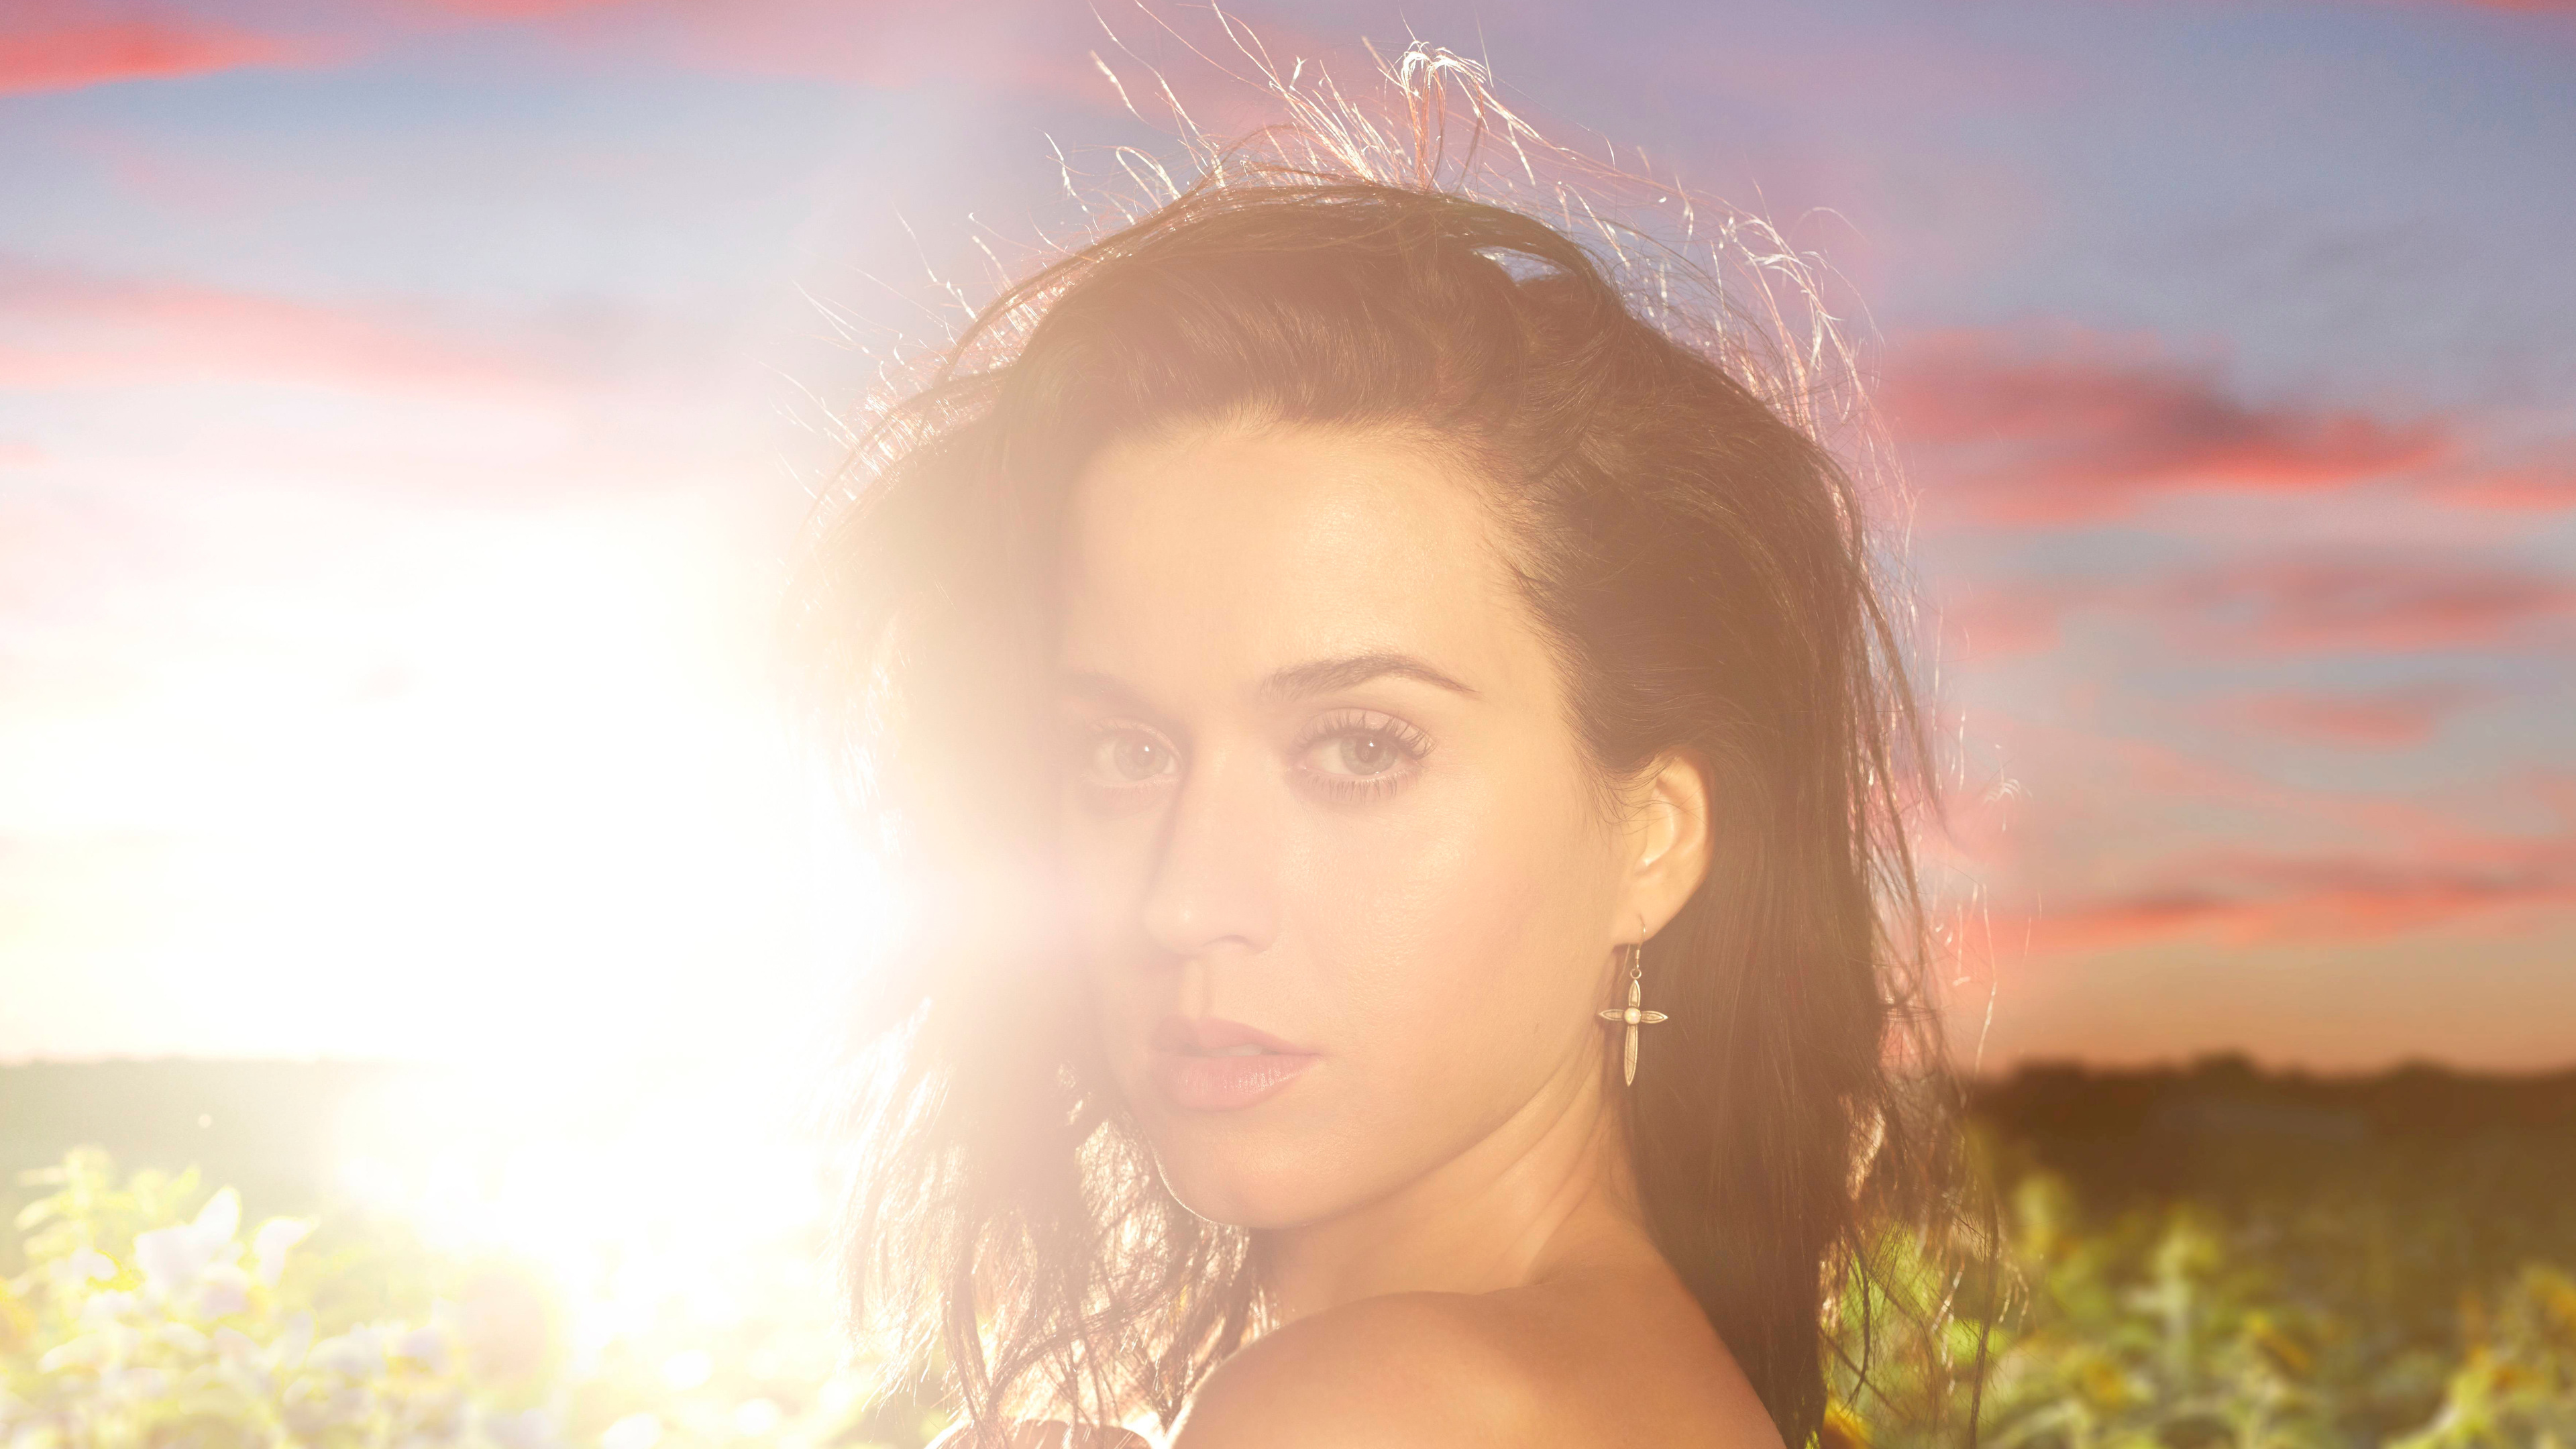 katy perry hd 1536857387 - Katy Perry HD - music wallpapers, katy perry wallpapers, girls wallpapers, celebrities wallpapers